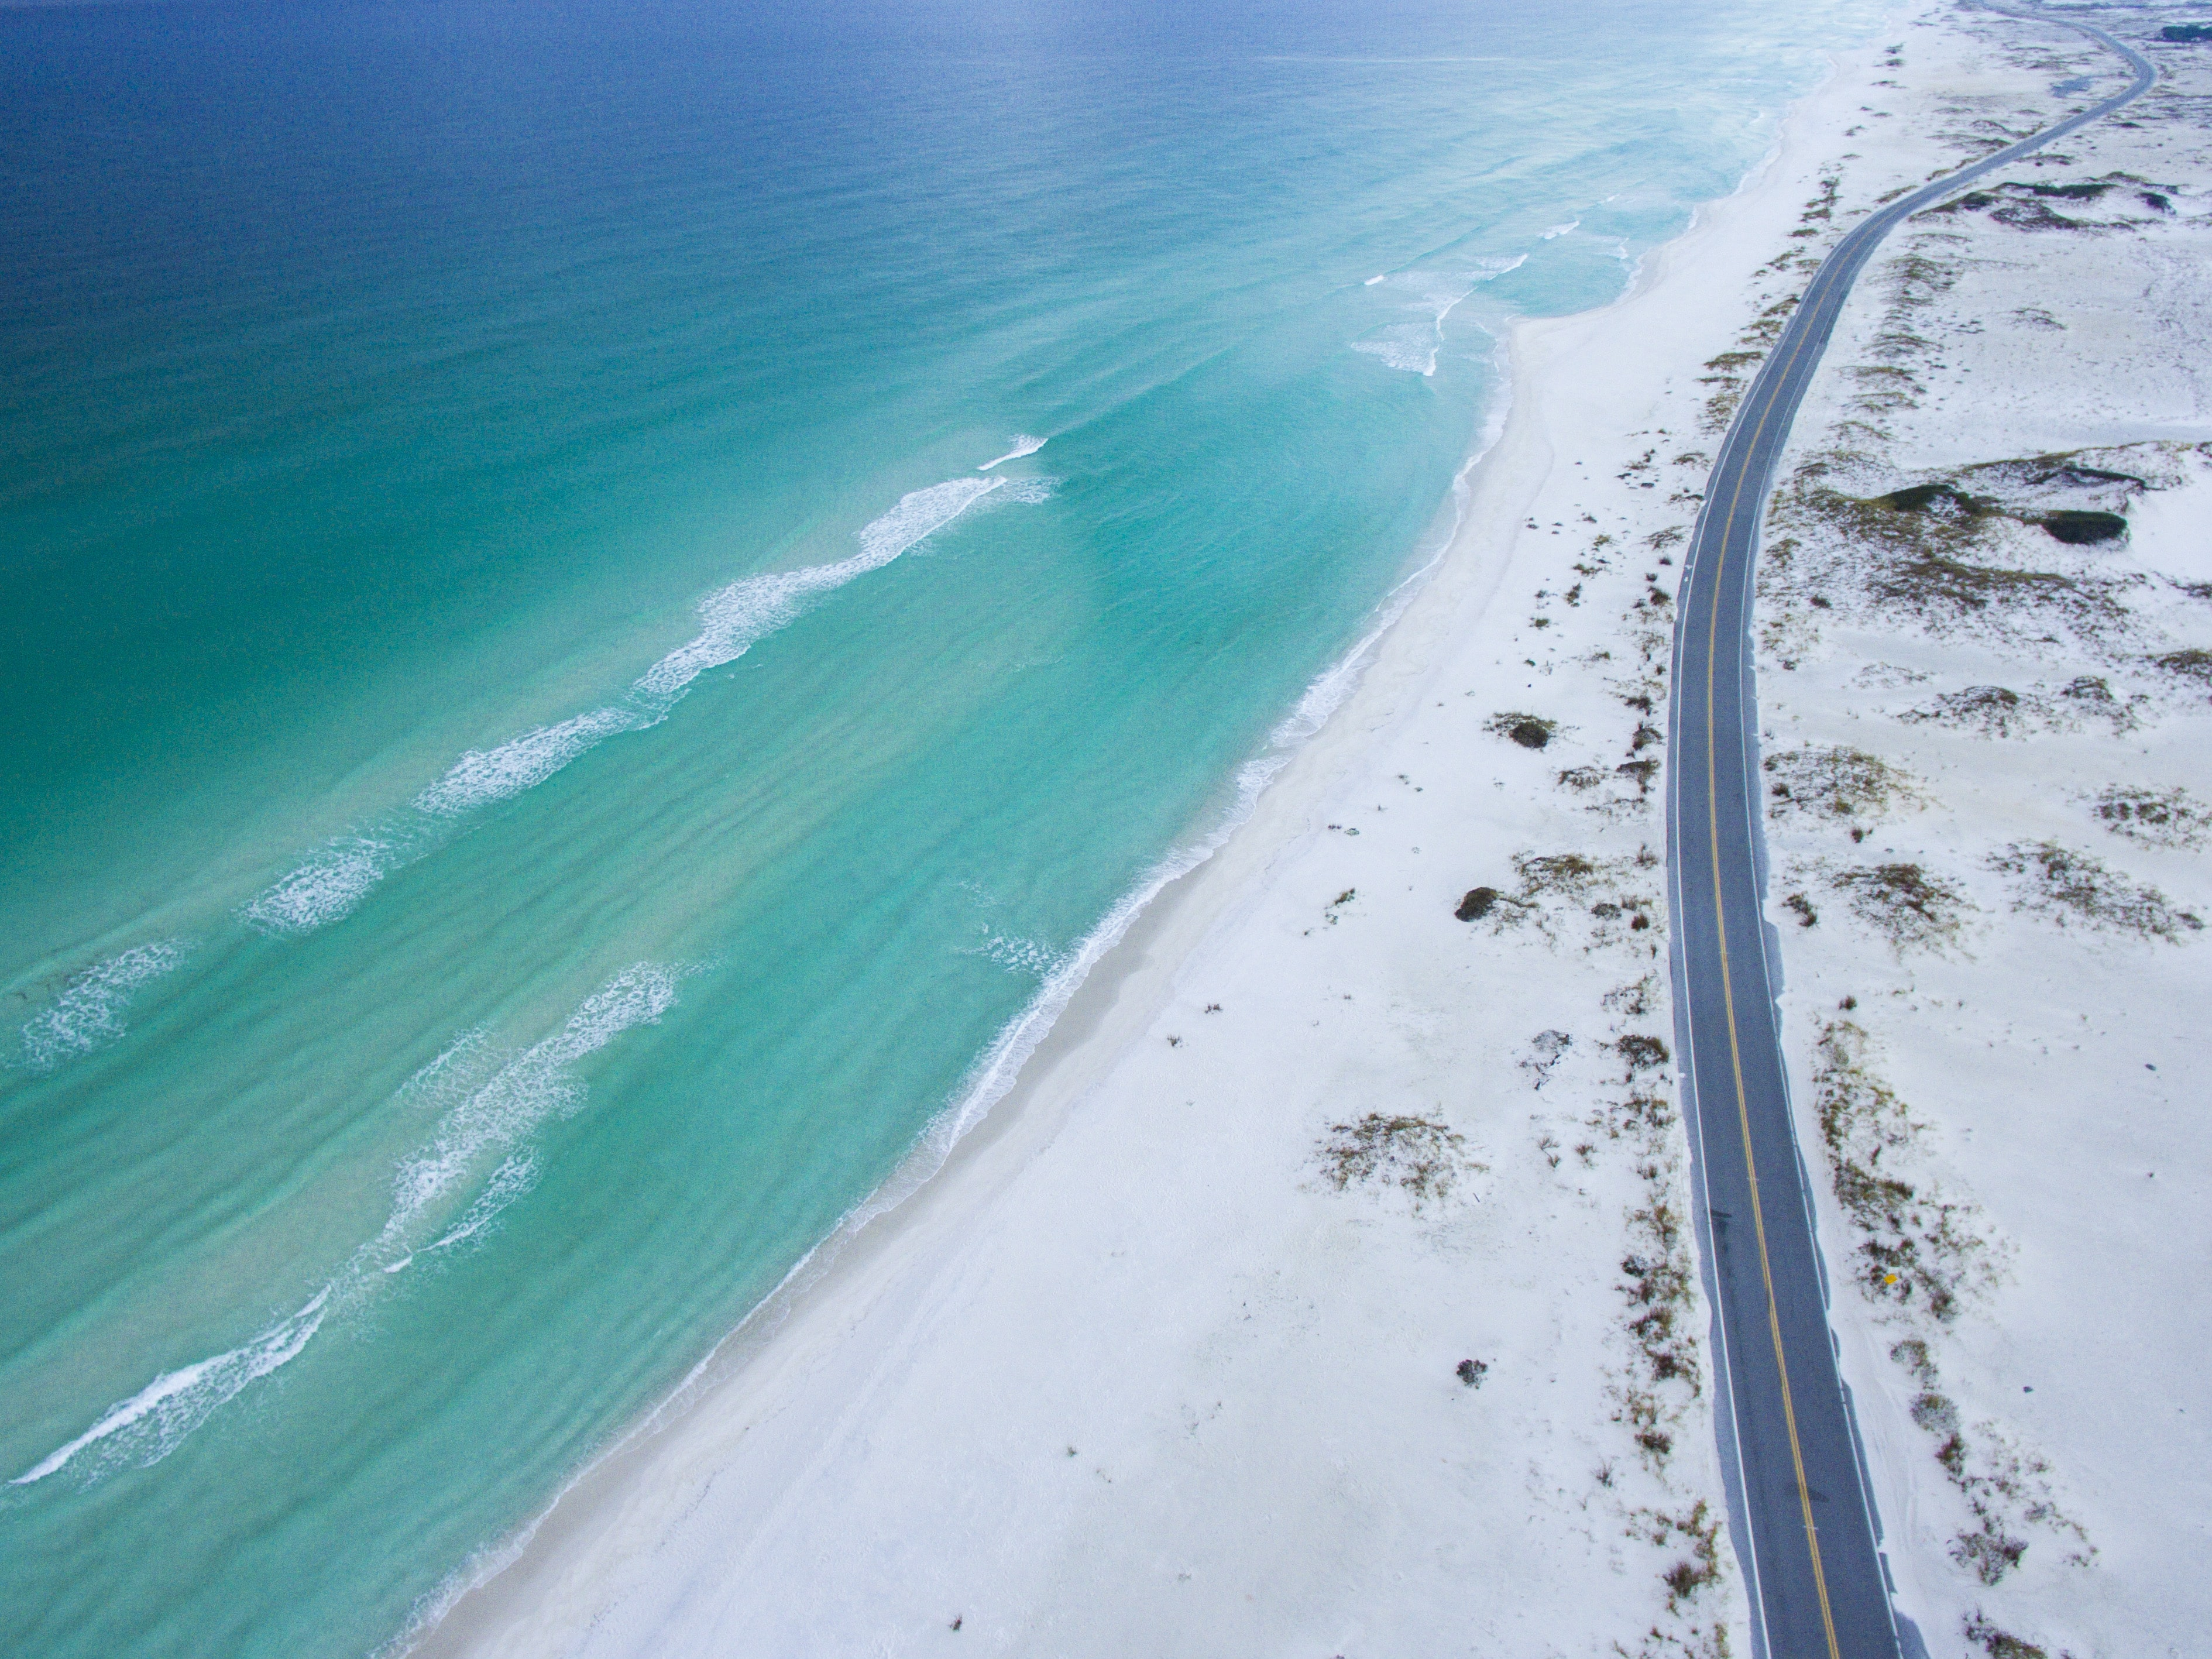 Drone view of a road along the sand beach coastline at Gulf Breeze, Florida, United States